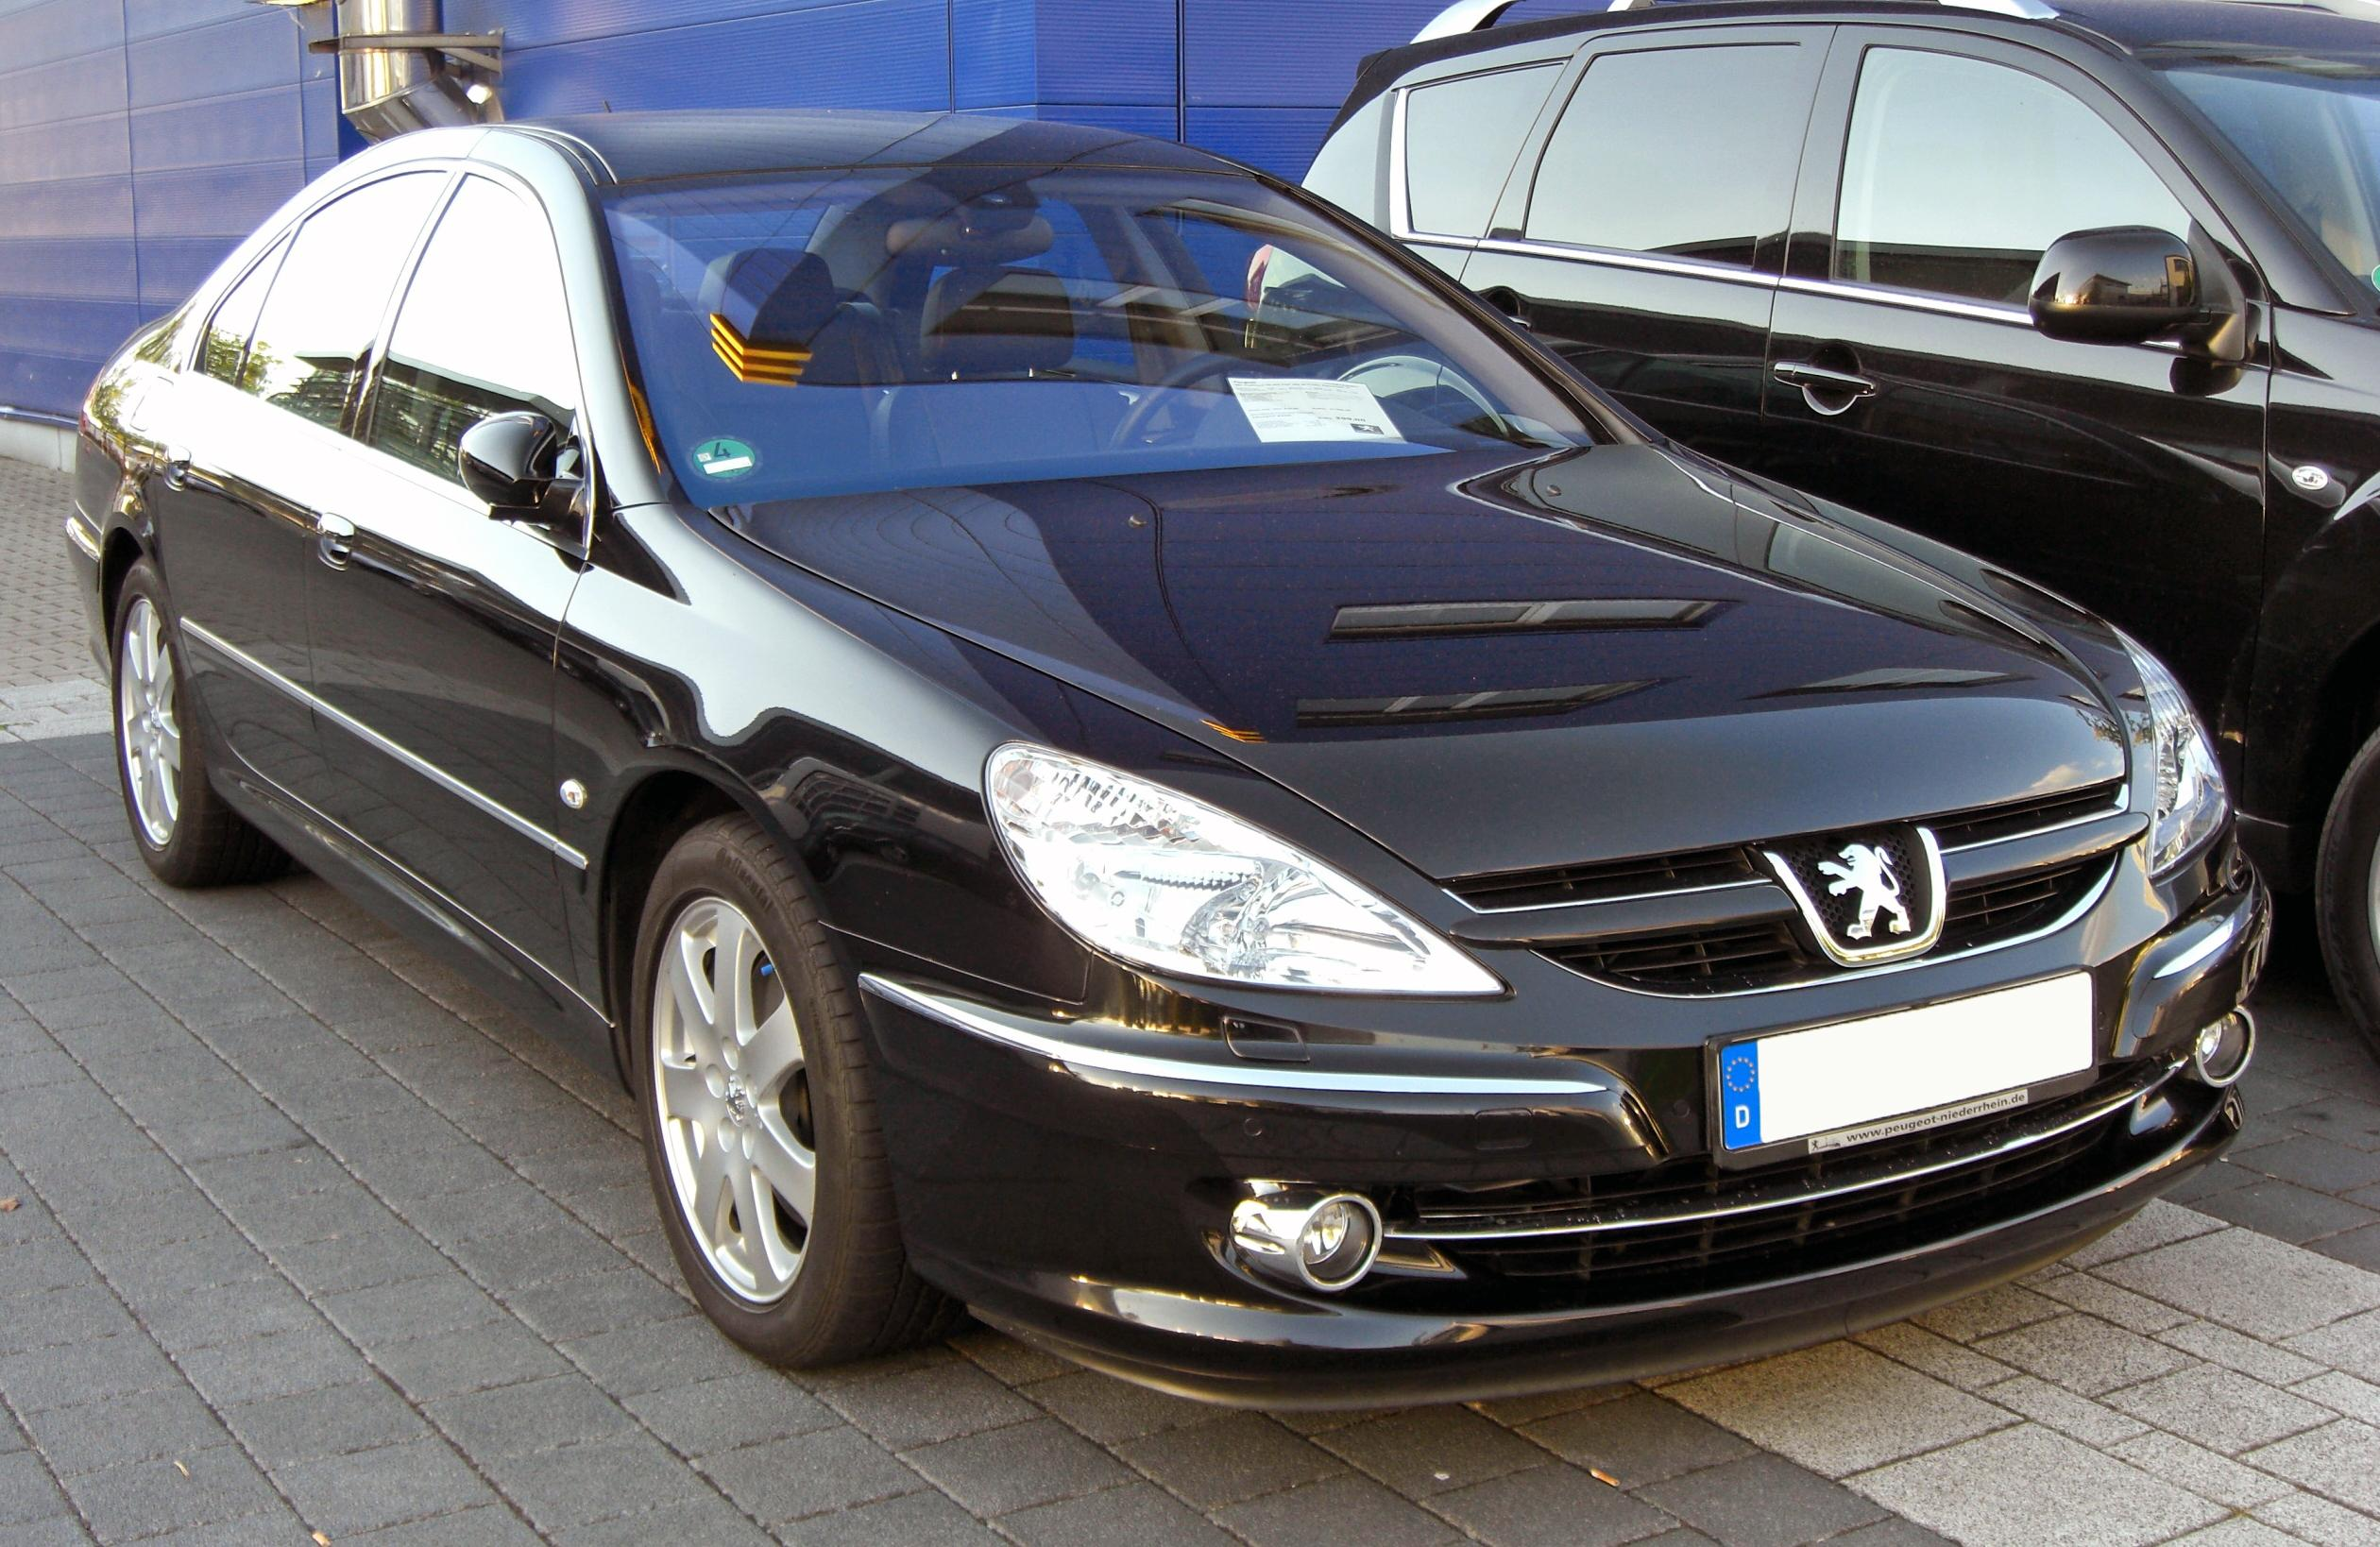 file peugeot 607 2 7 hdi facelift 20090529 front jpg wikimedia commons. Black Bedroom Furniture Sets. Home Design Ideas